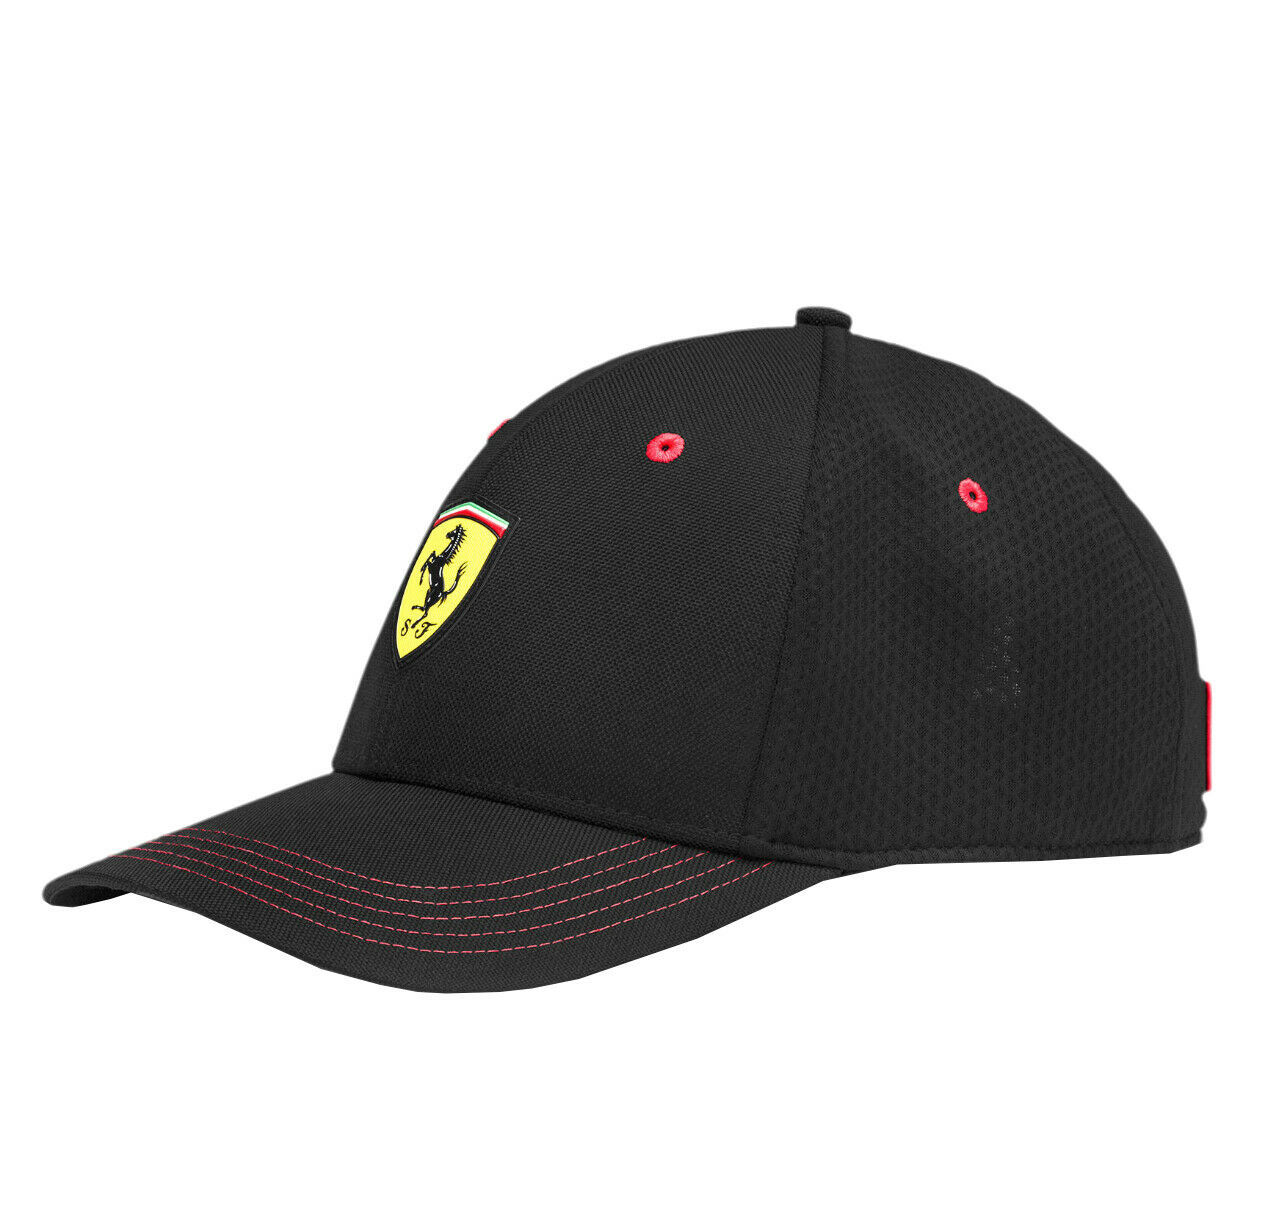 Puma Ferrari Sports Car Logo Wide Brim Dad Cap Snap Back Black Baseball Hat